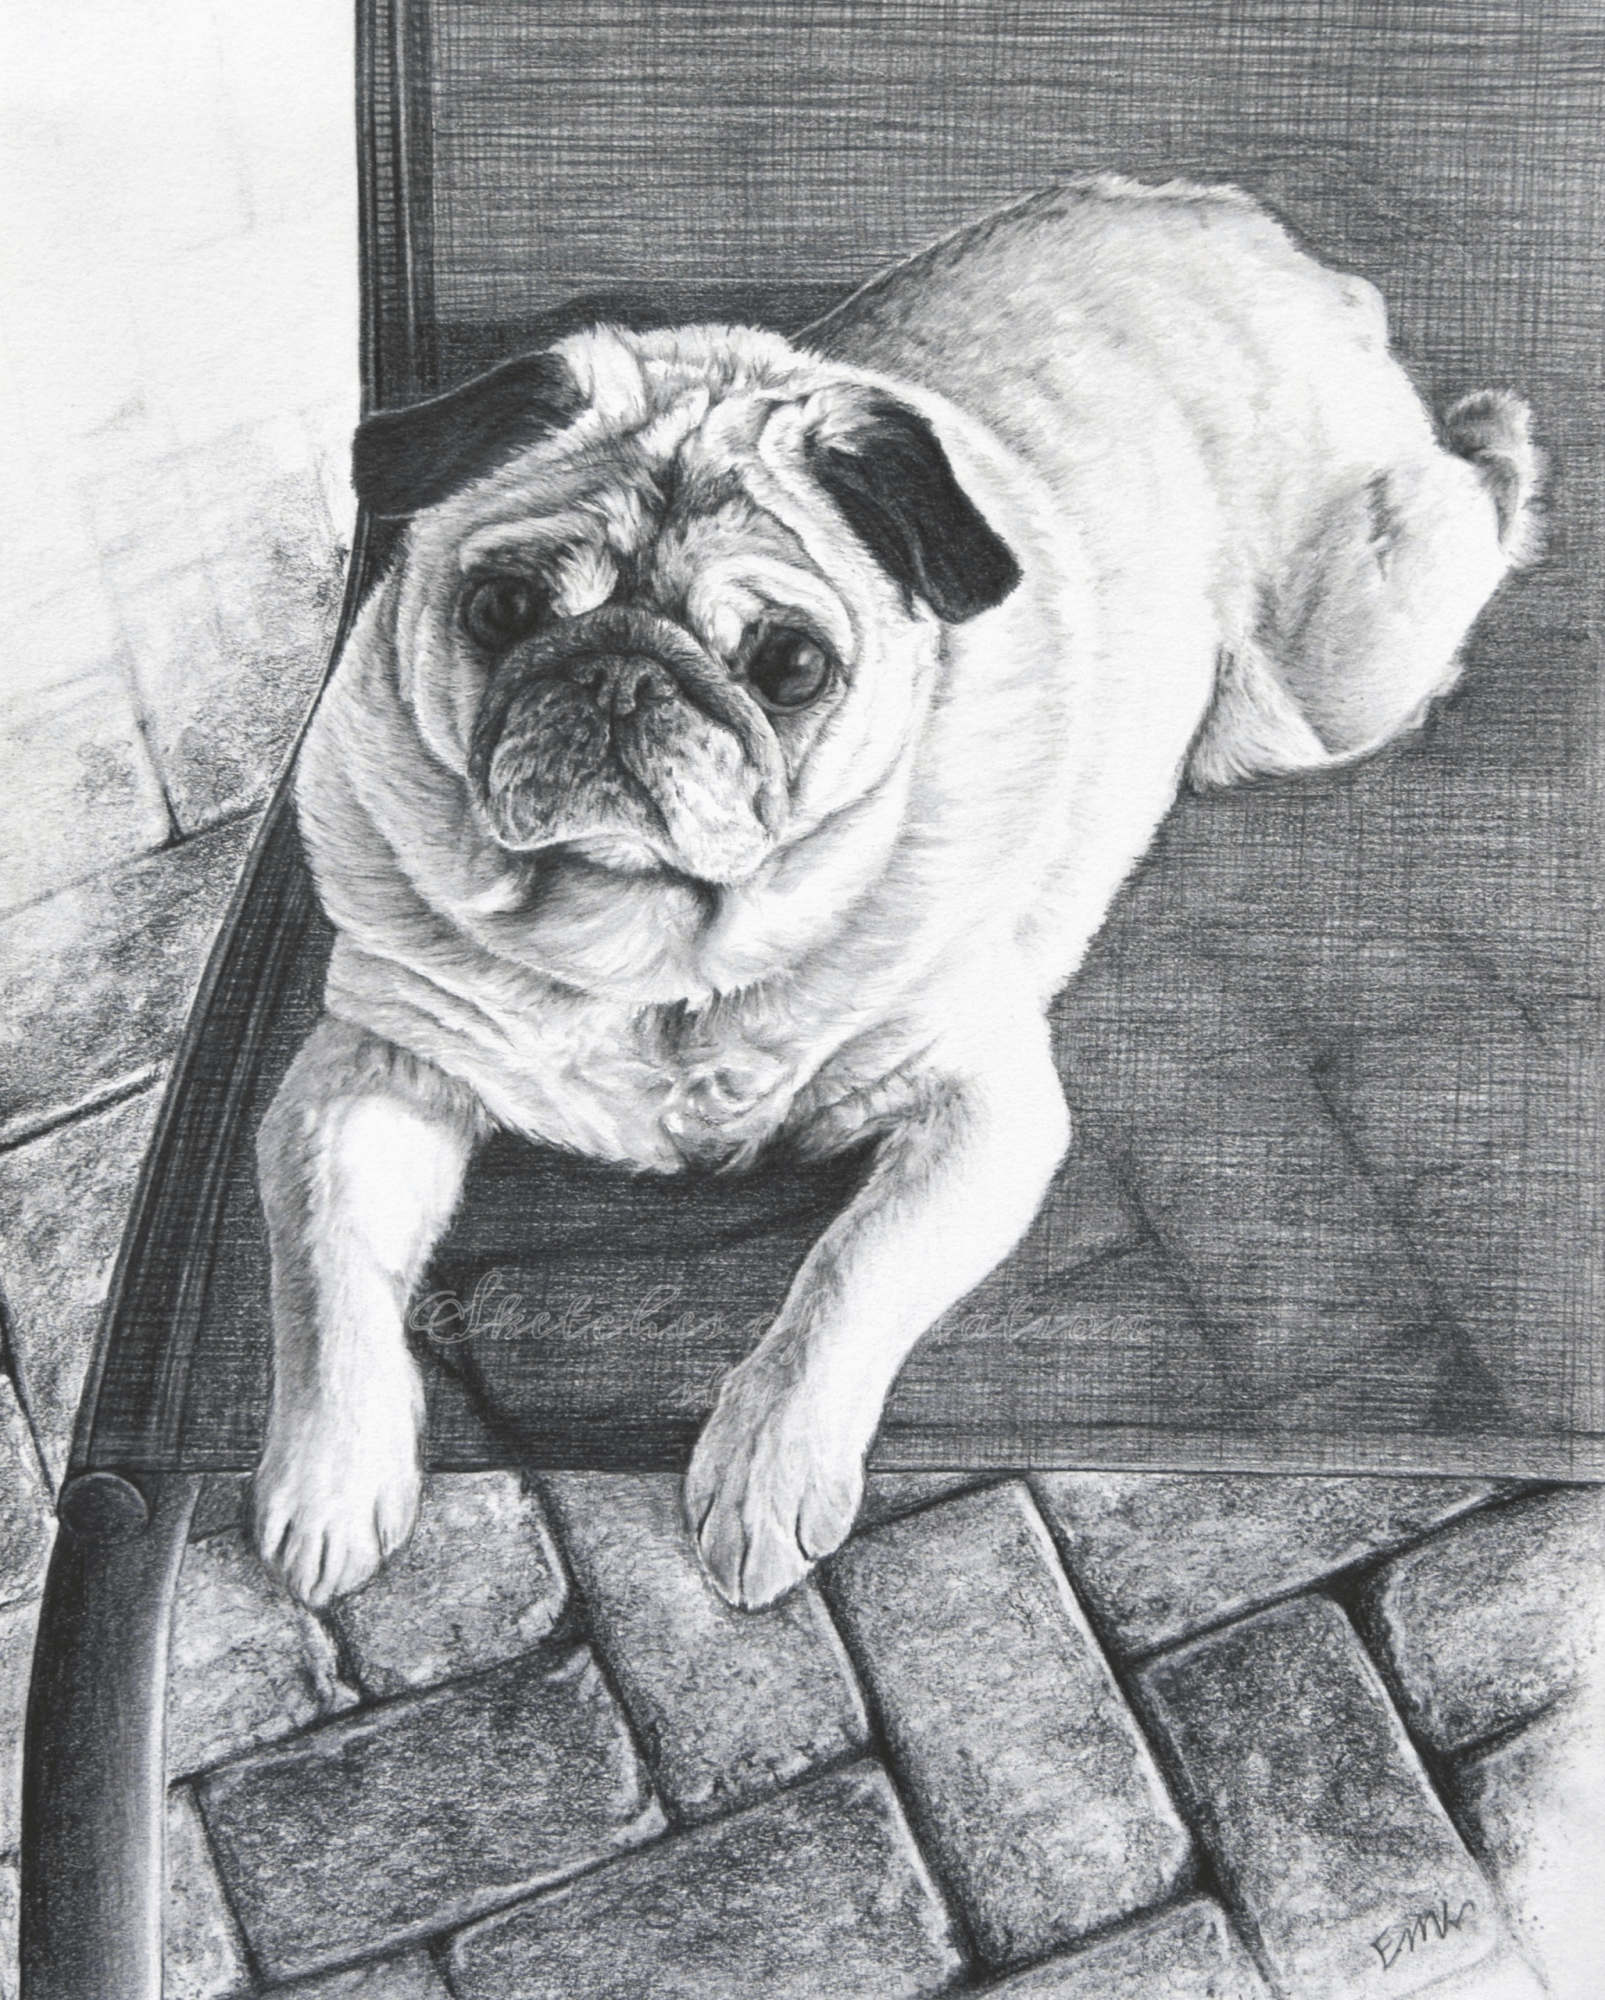 'Chumba' a drawing of a Chinese Pug. 8x10 inches. Completed August 2019